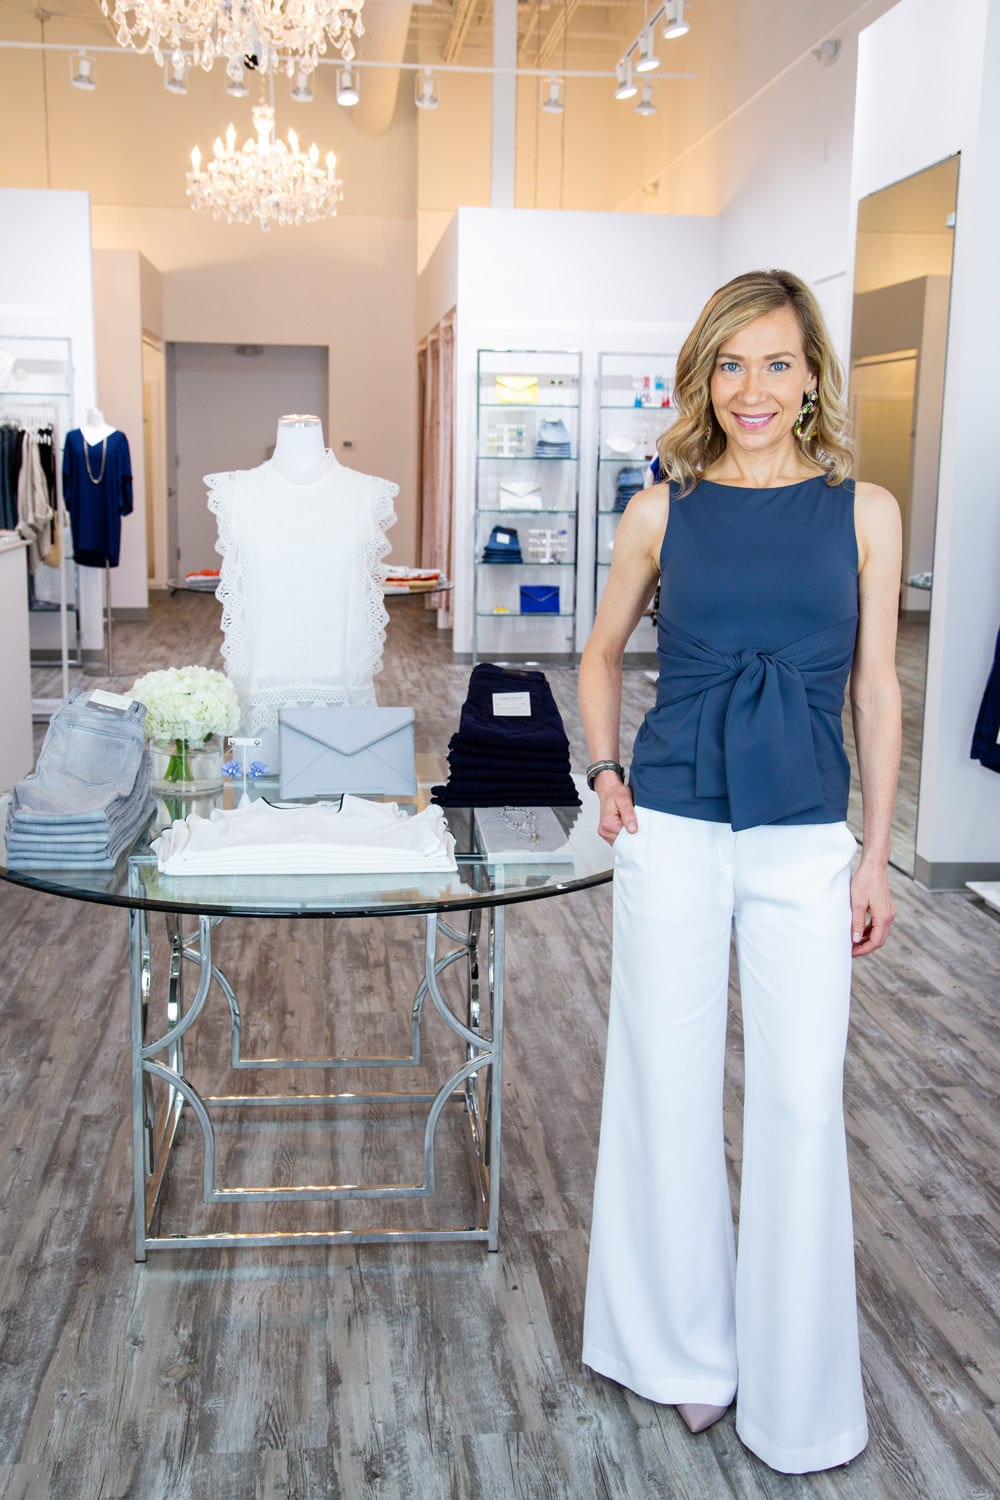 French Cuff Boutique Opens in The Woodlands - Living Magazine